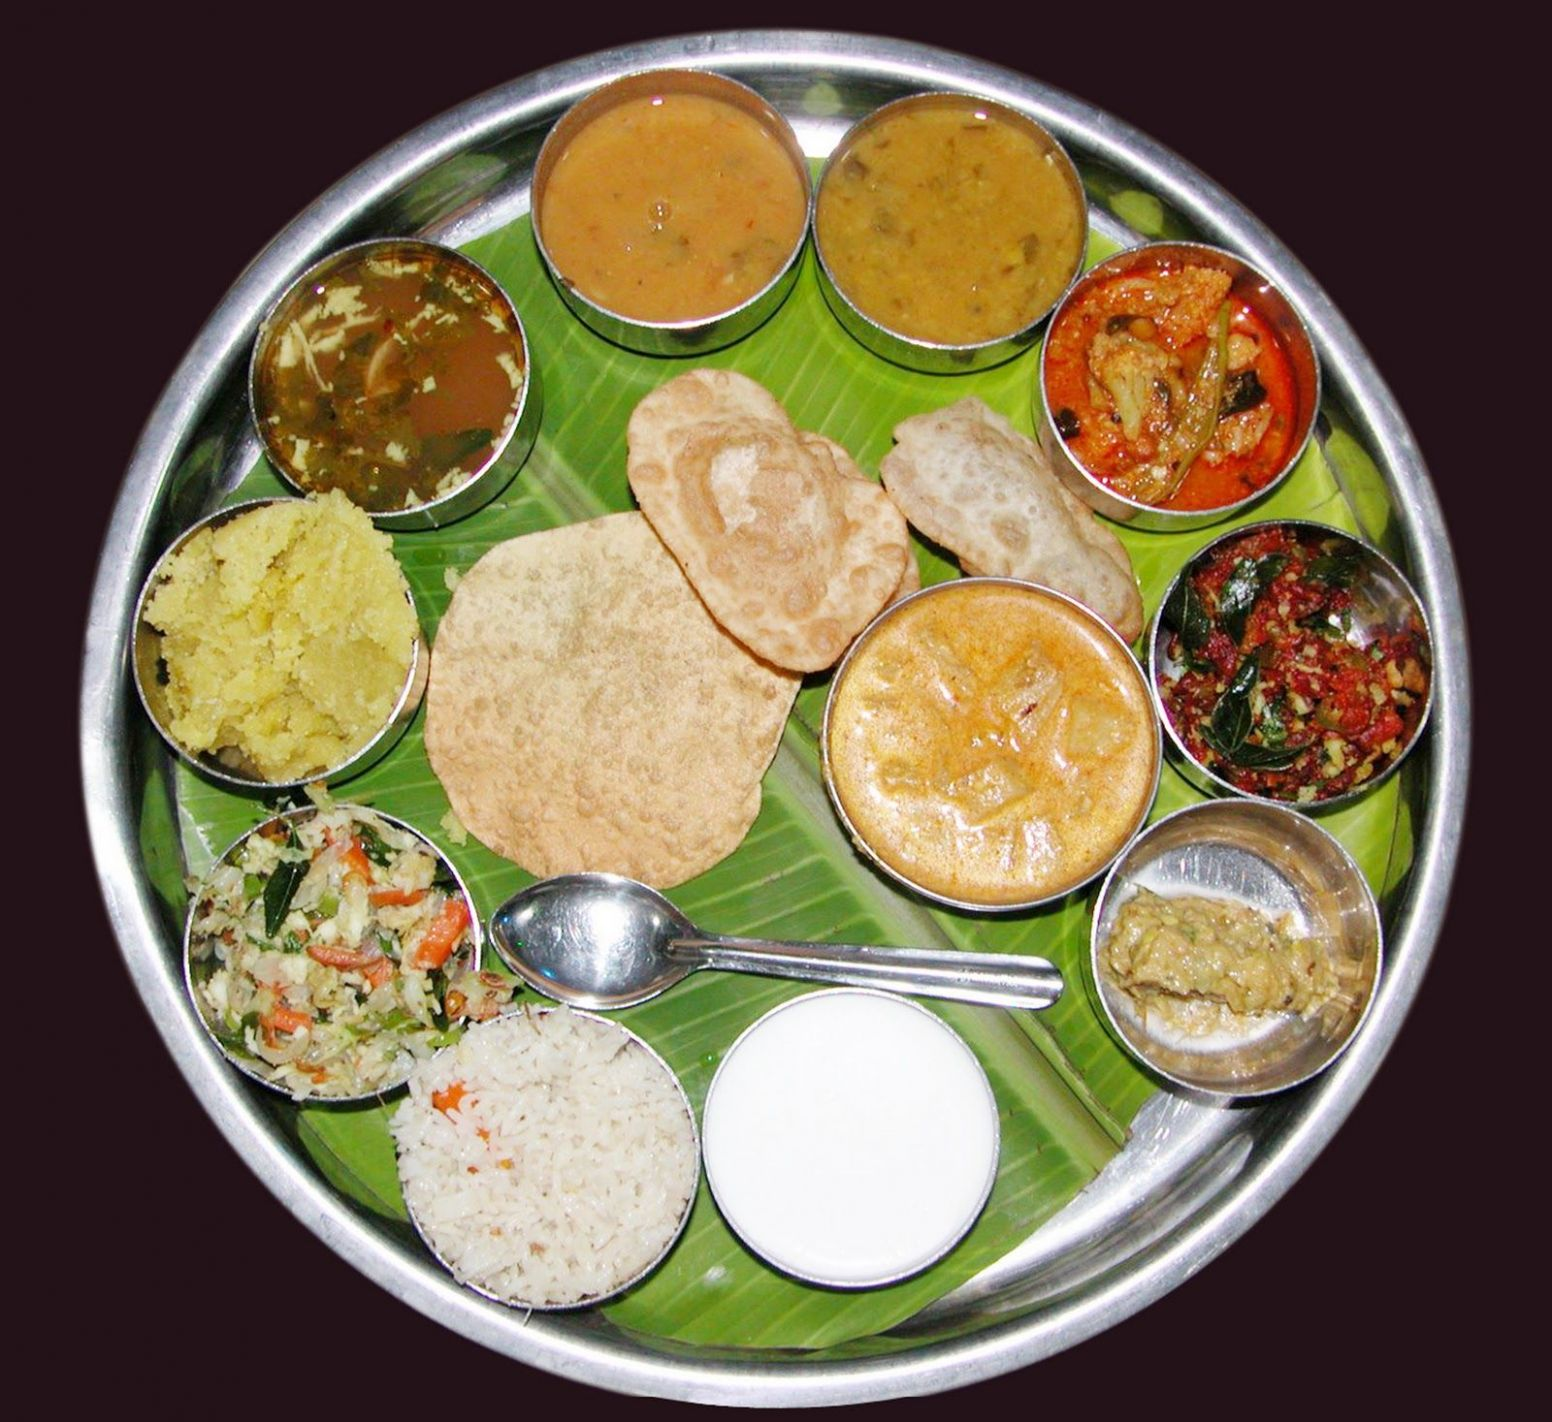 South Indian food - Google Search | Indian food recipes, Indian ..